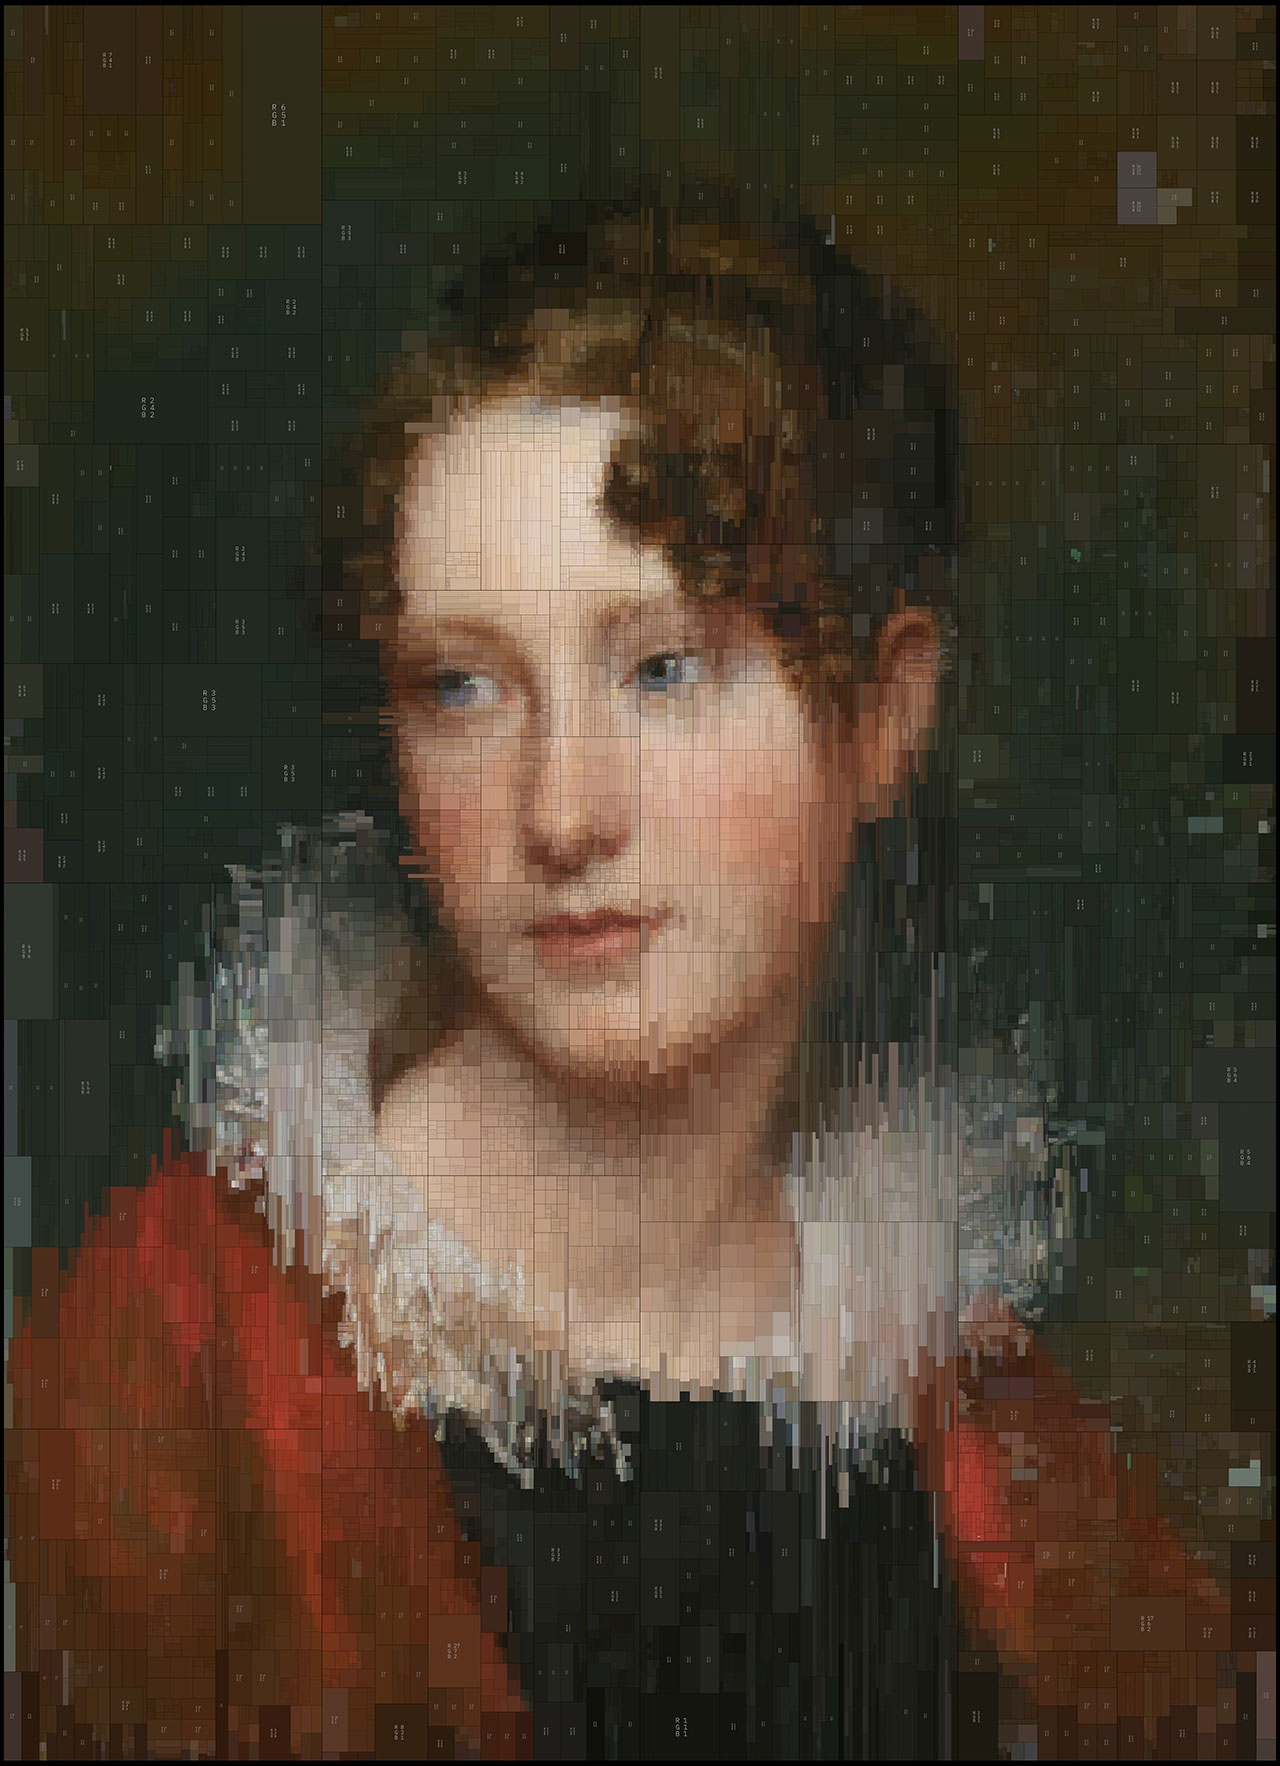 Rosalba, from Portraits series by Dimitris Ladopoulos (Original painting -Portrait of Rosalba Peale byRembrandt Peale, 1820).